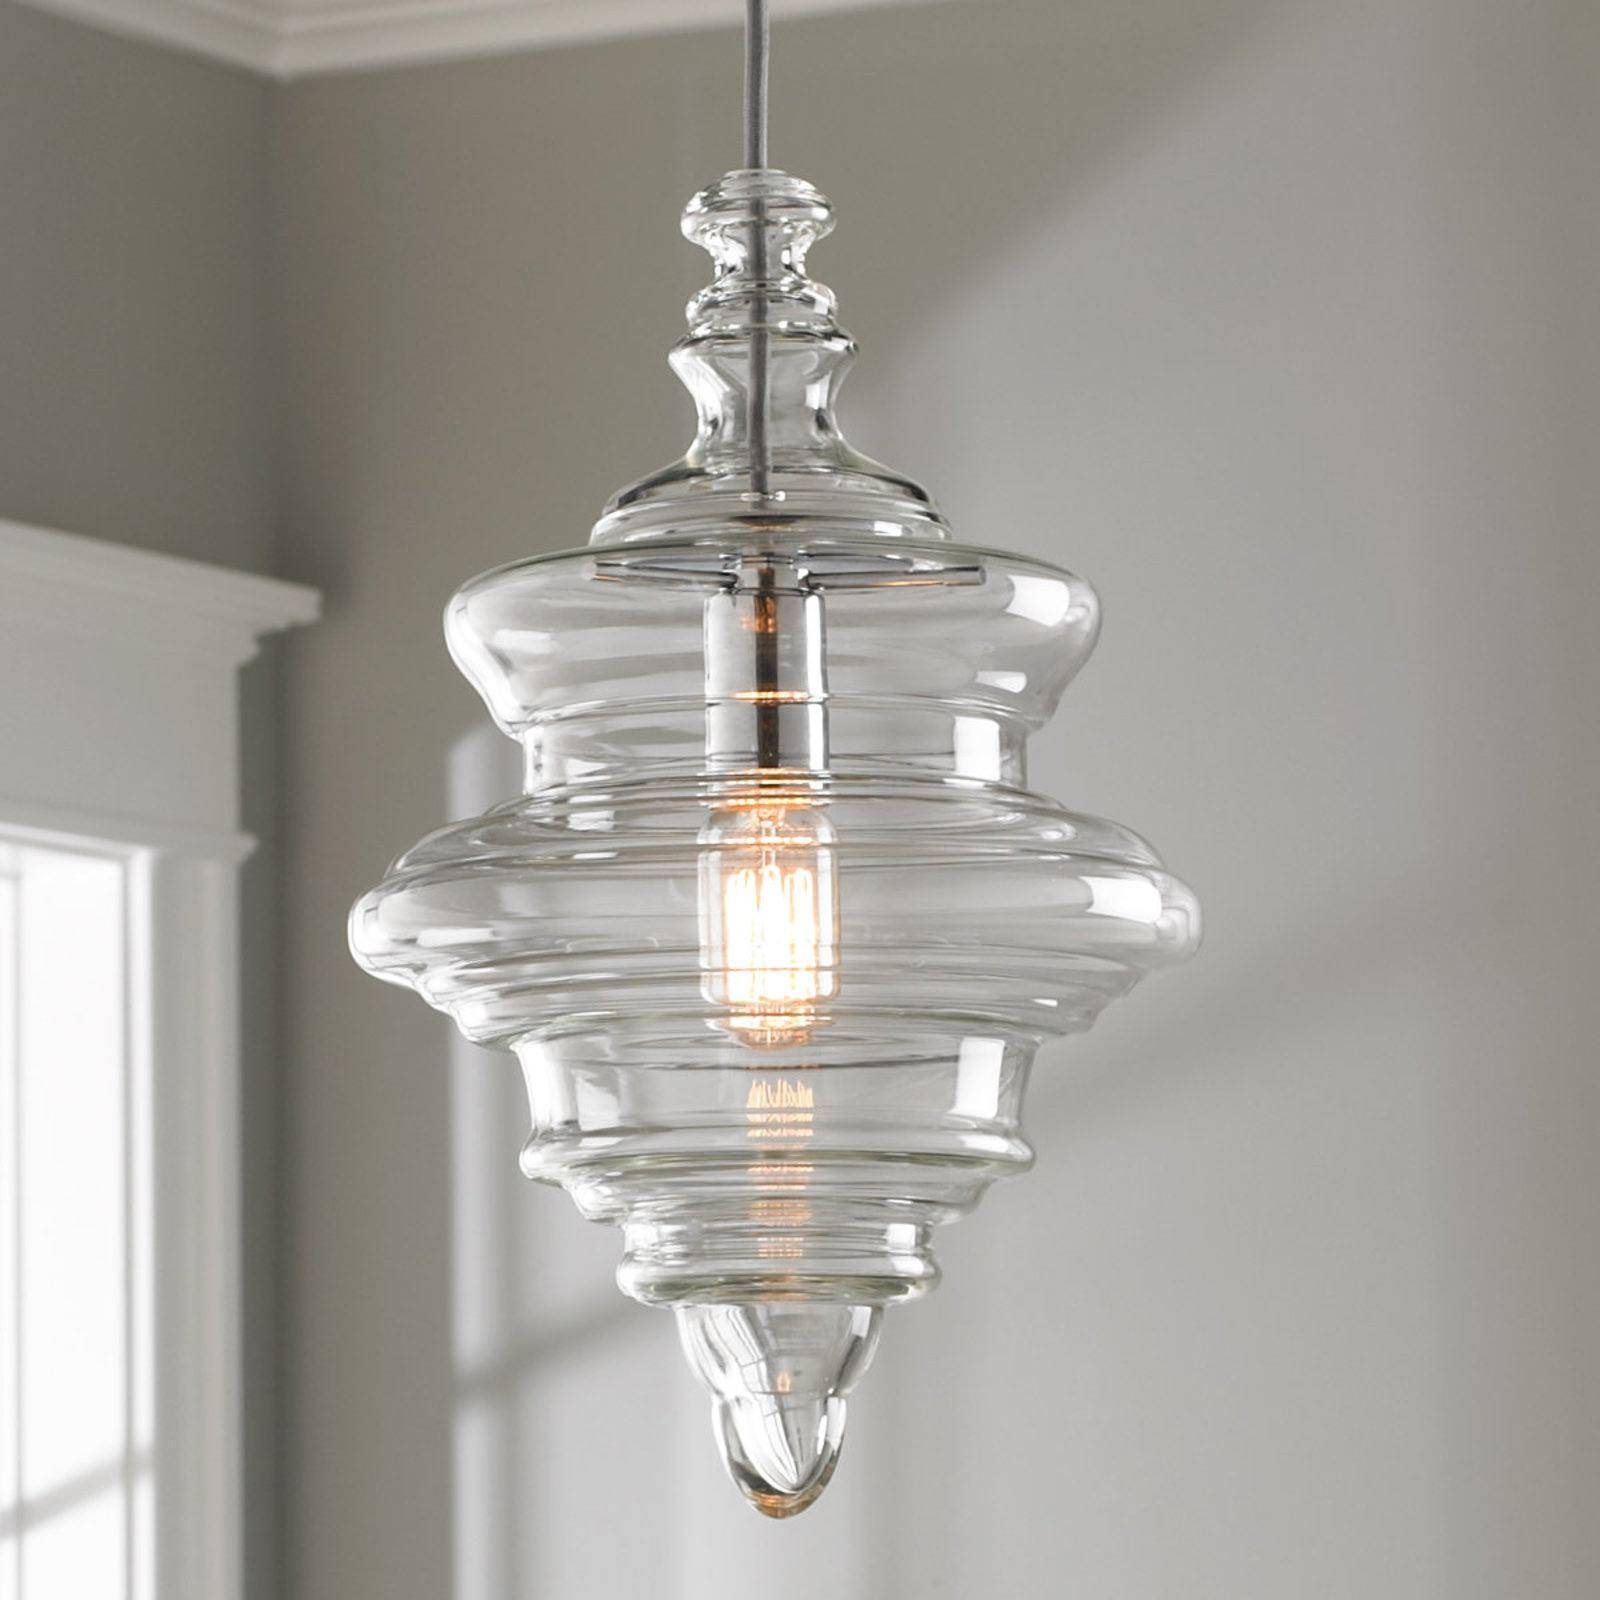 Sea Glass Pendant Lights As Well Of Paxton Hand Blown Light In The For Sea Glass Pendant Lights (View 4 of 15)